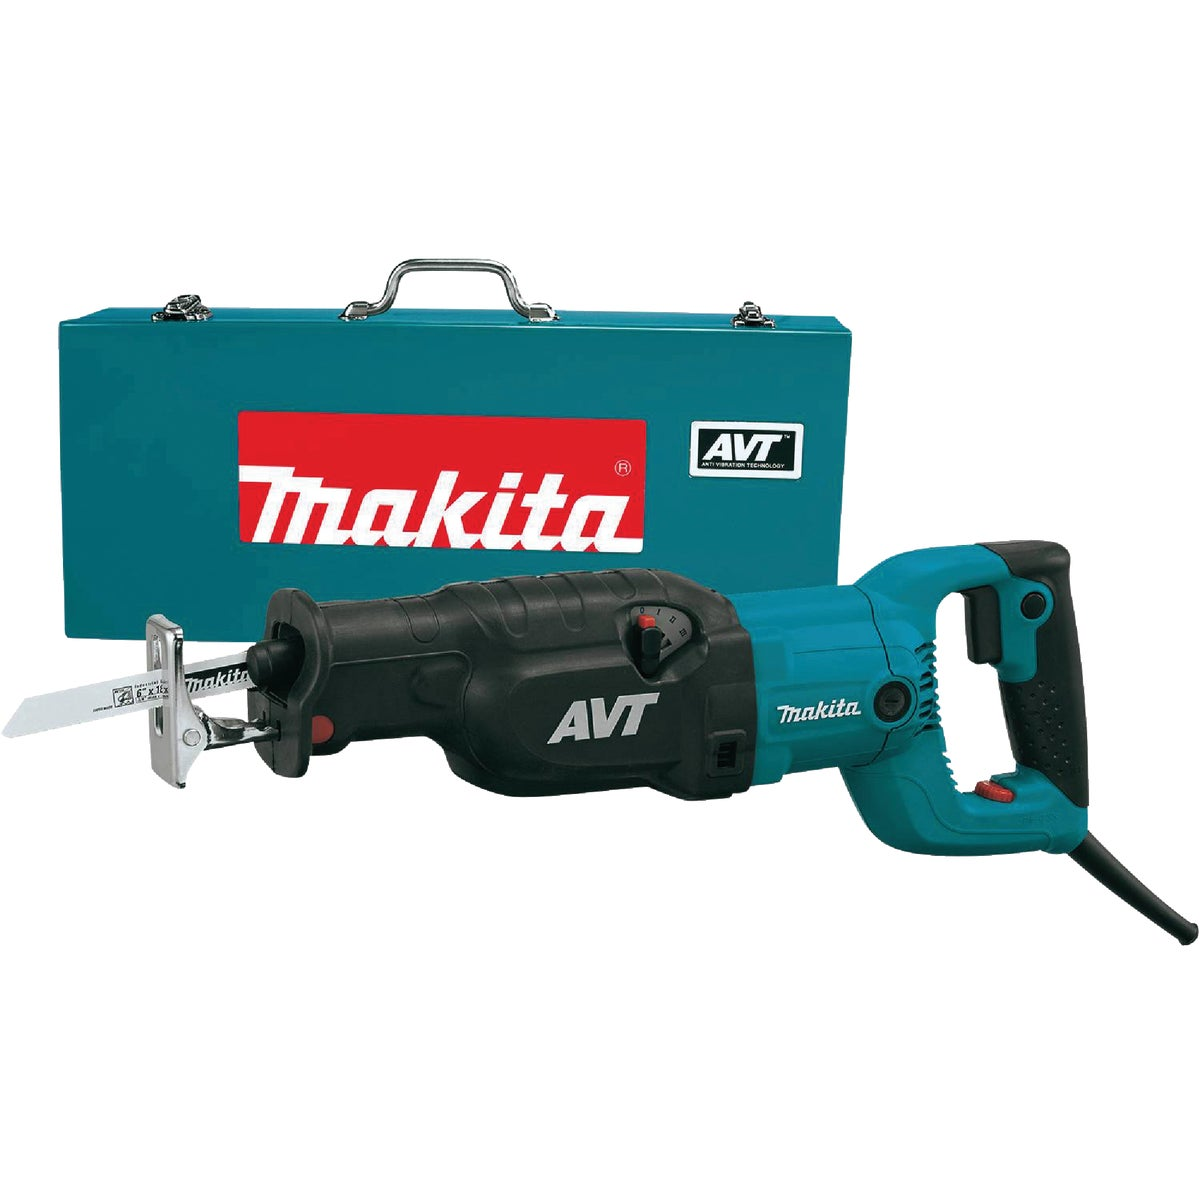 15A RECIPROCATING SAW - JR3070CT by Makita Usa Inc